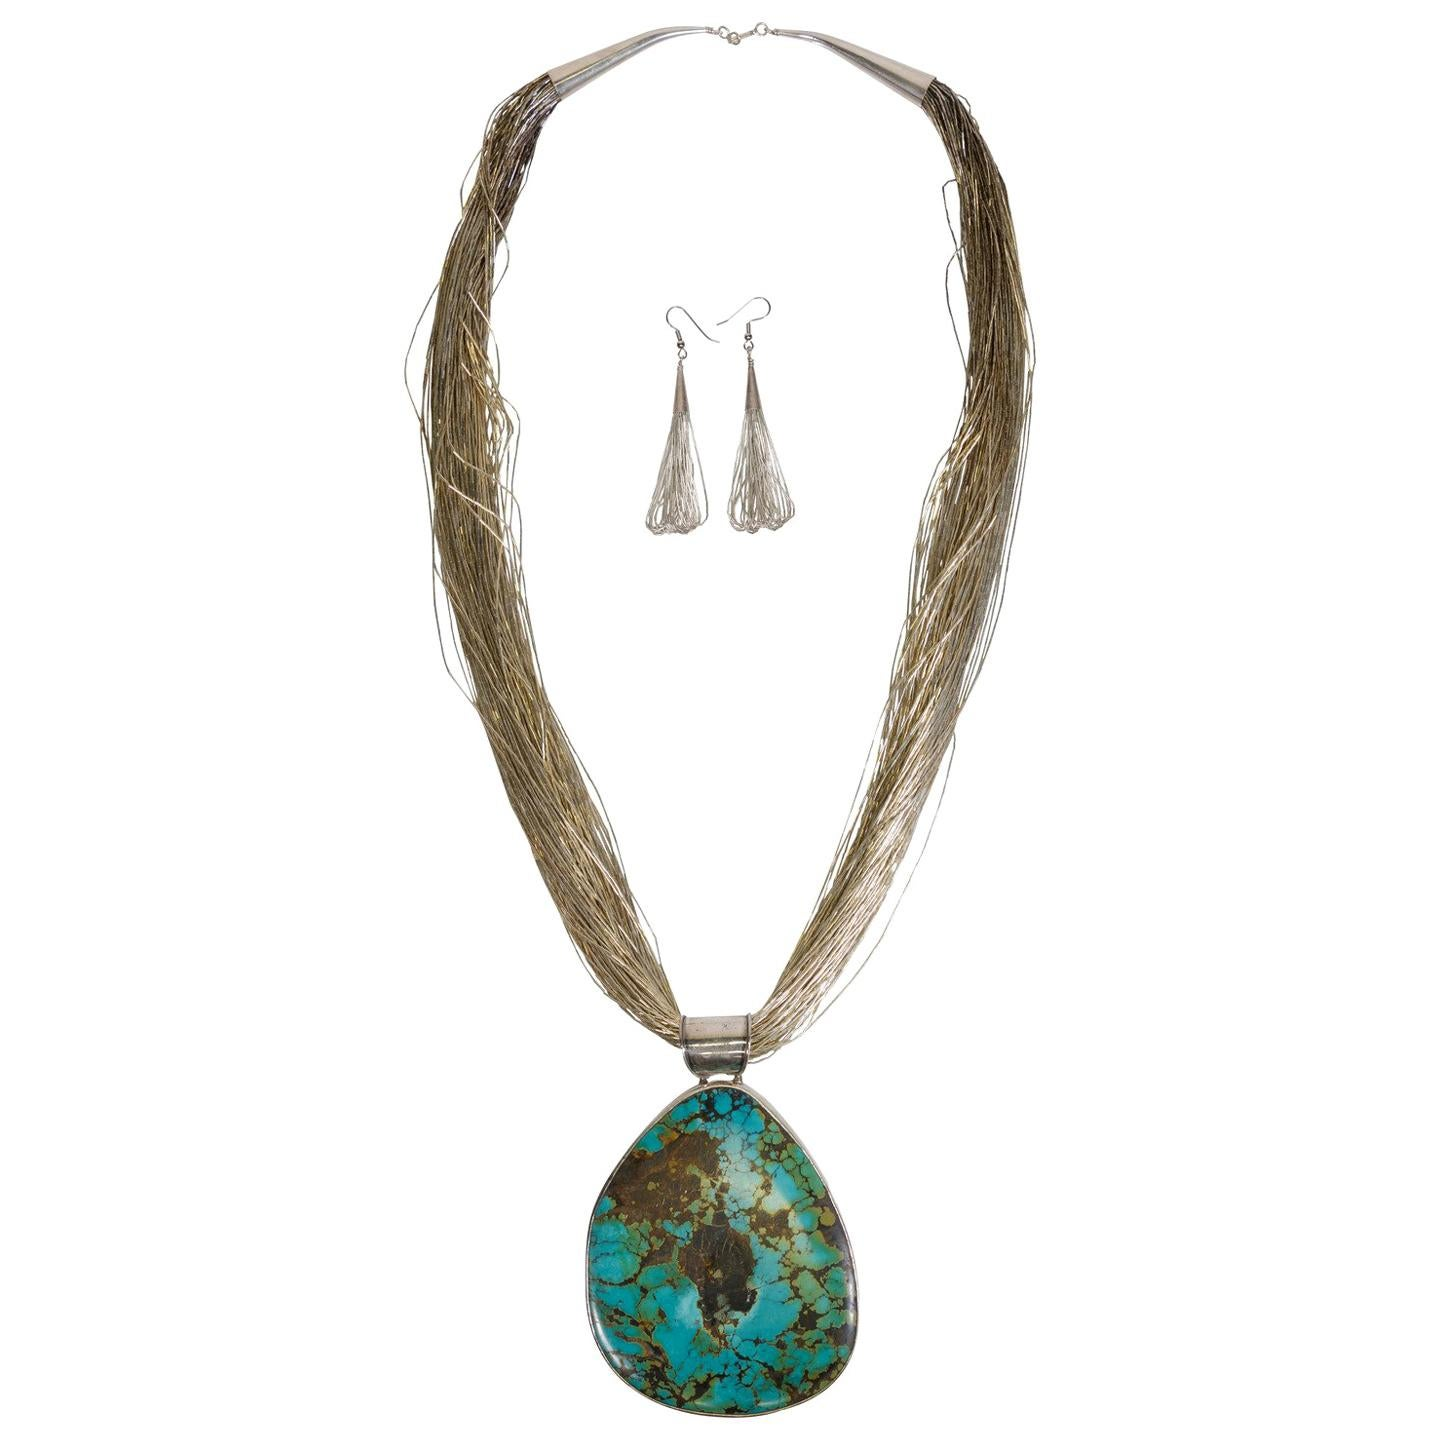 Turquoise Liquid Silver Necklace and Earrings